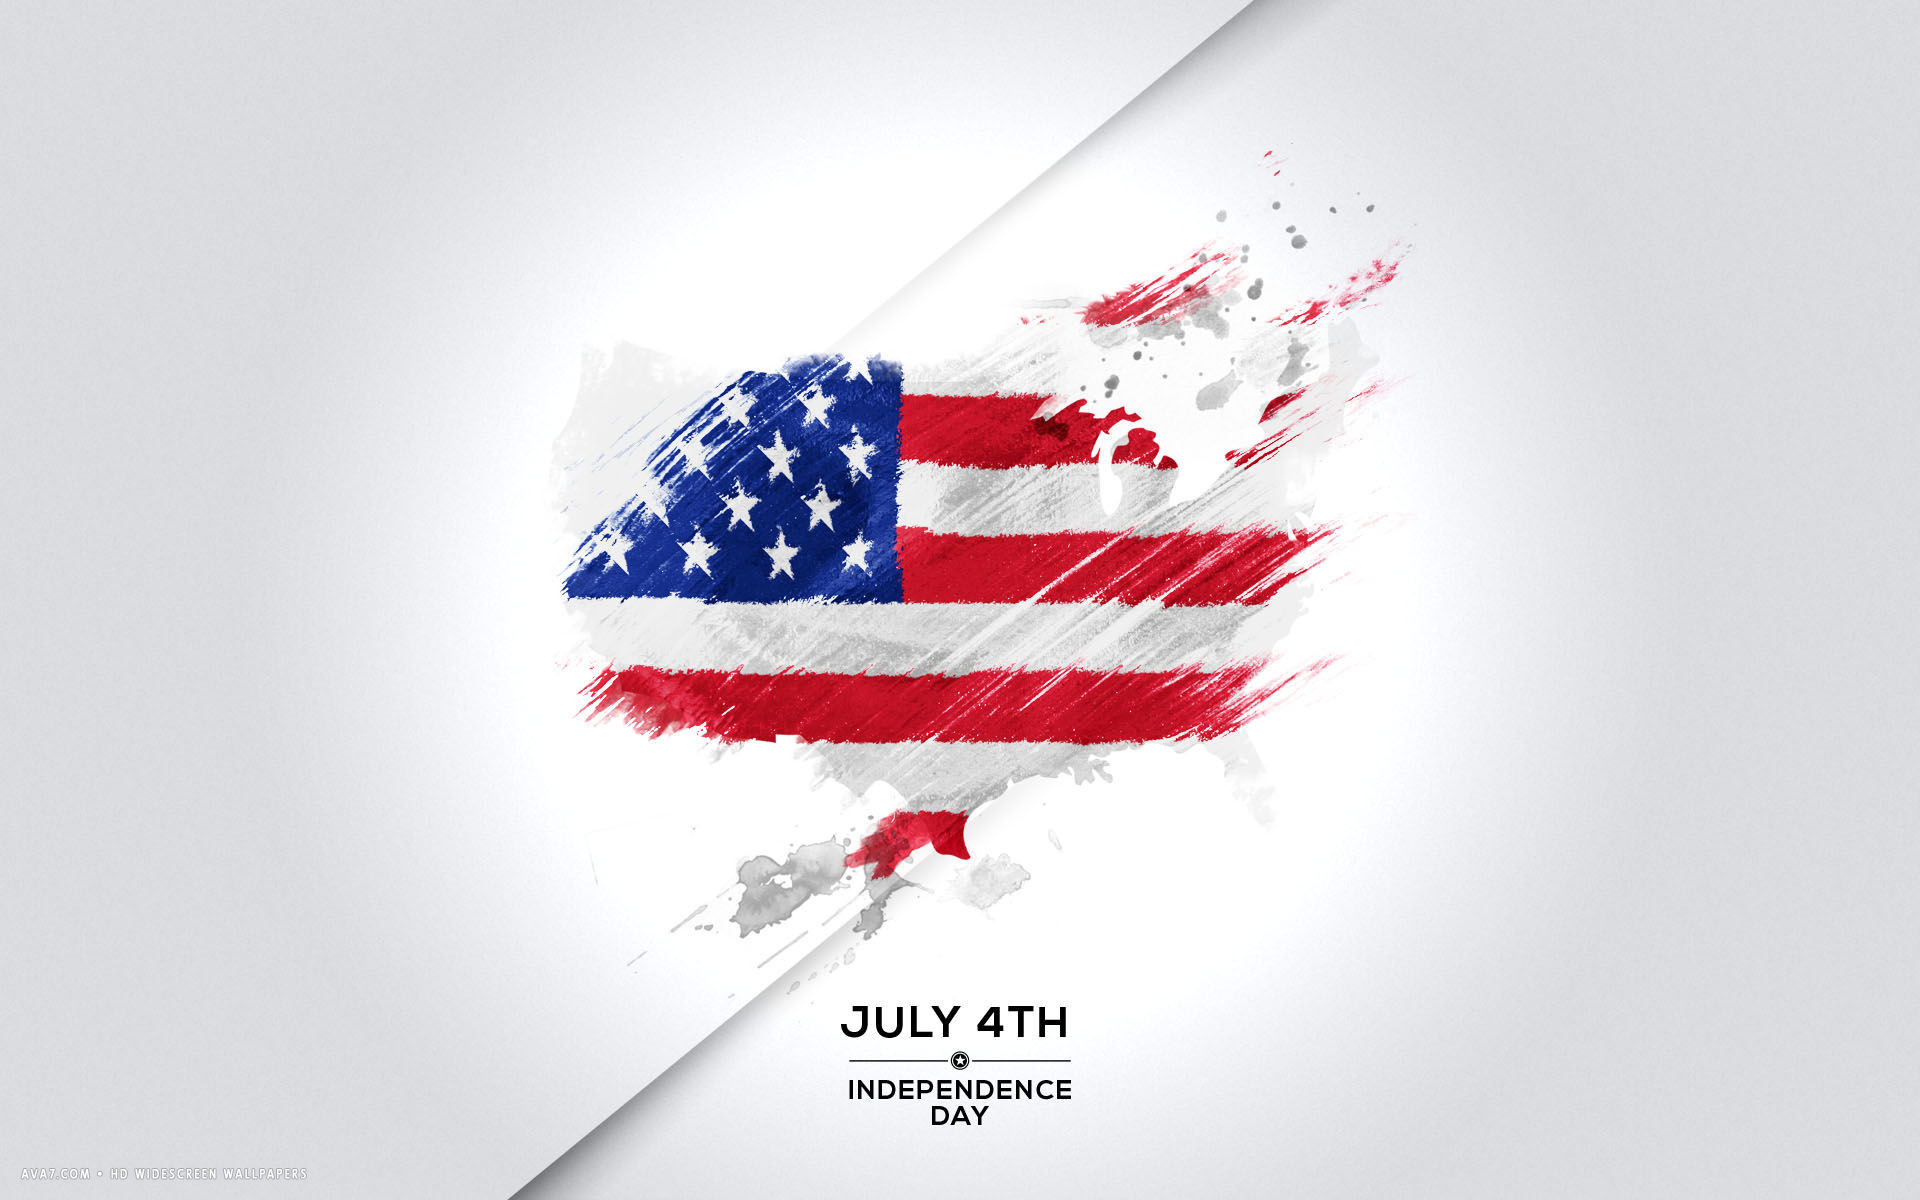 … july 4th independence day usa flag map abstract holiday